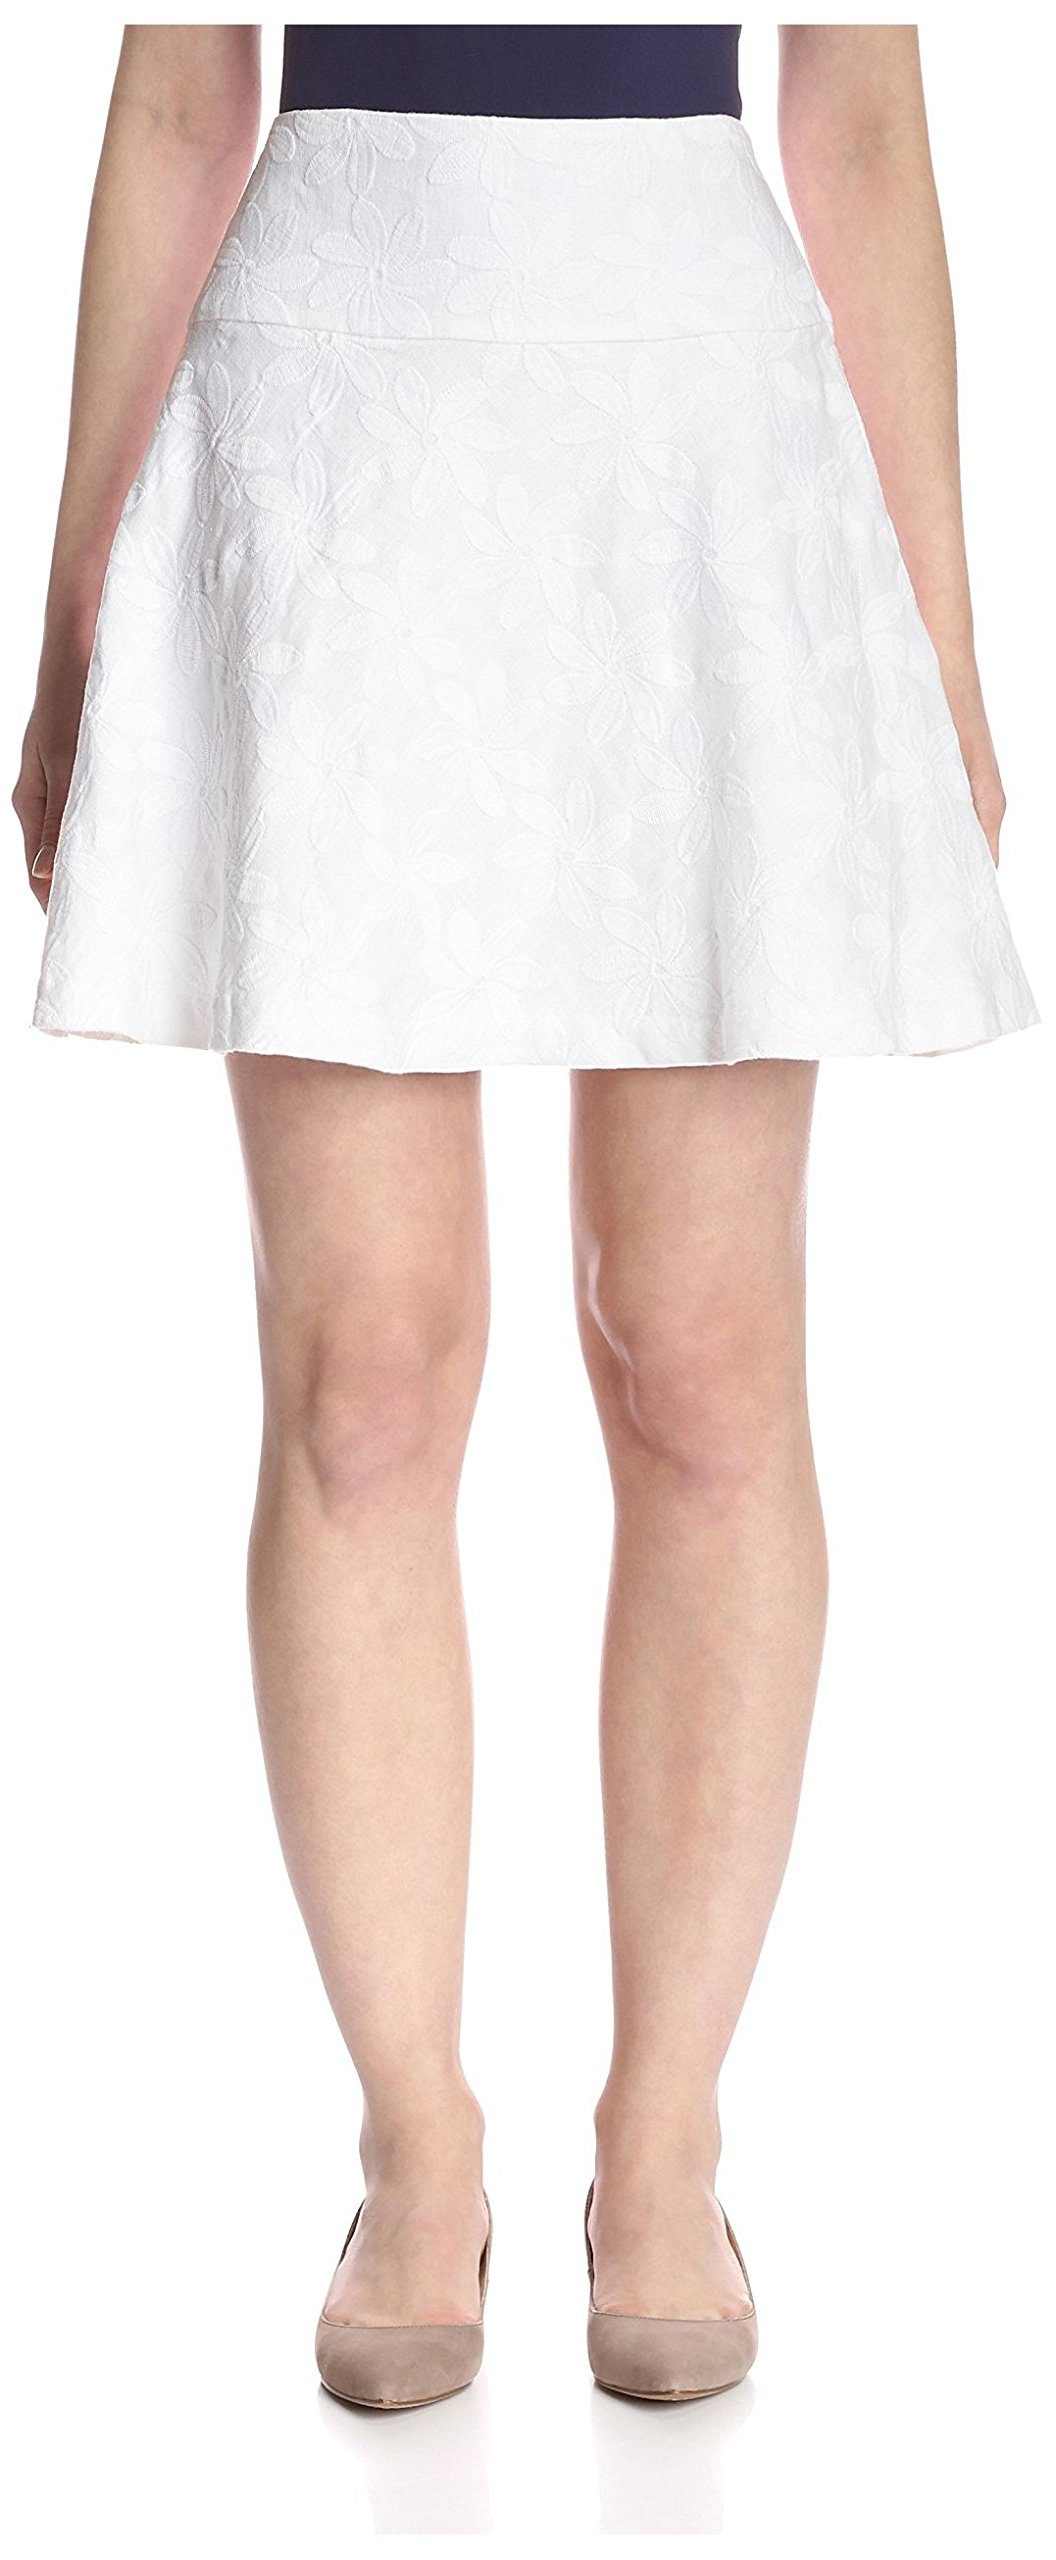 J. McLaughlin Women's Lilou Embroidered Linen Fit & Flare Skirt, White, 14 US